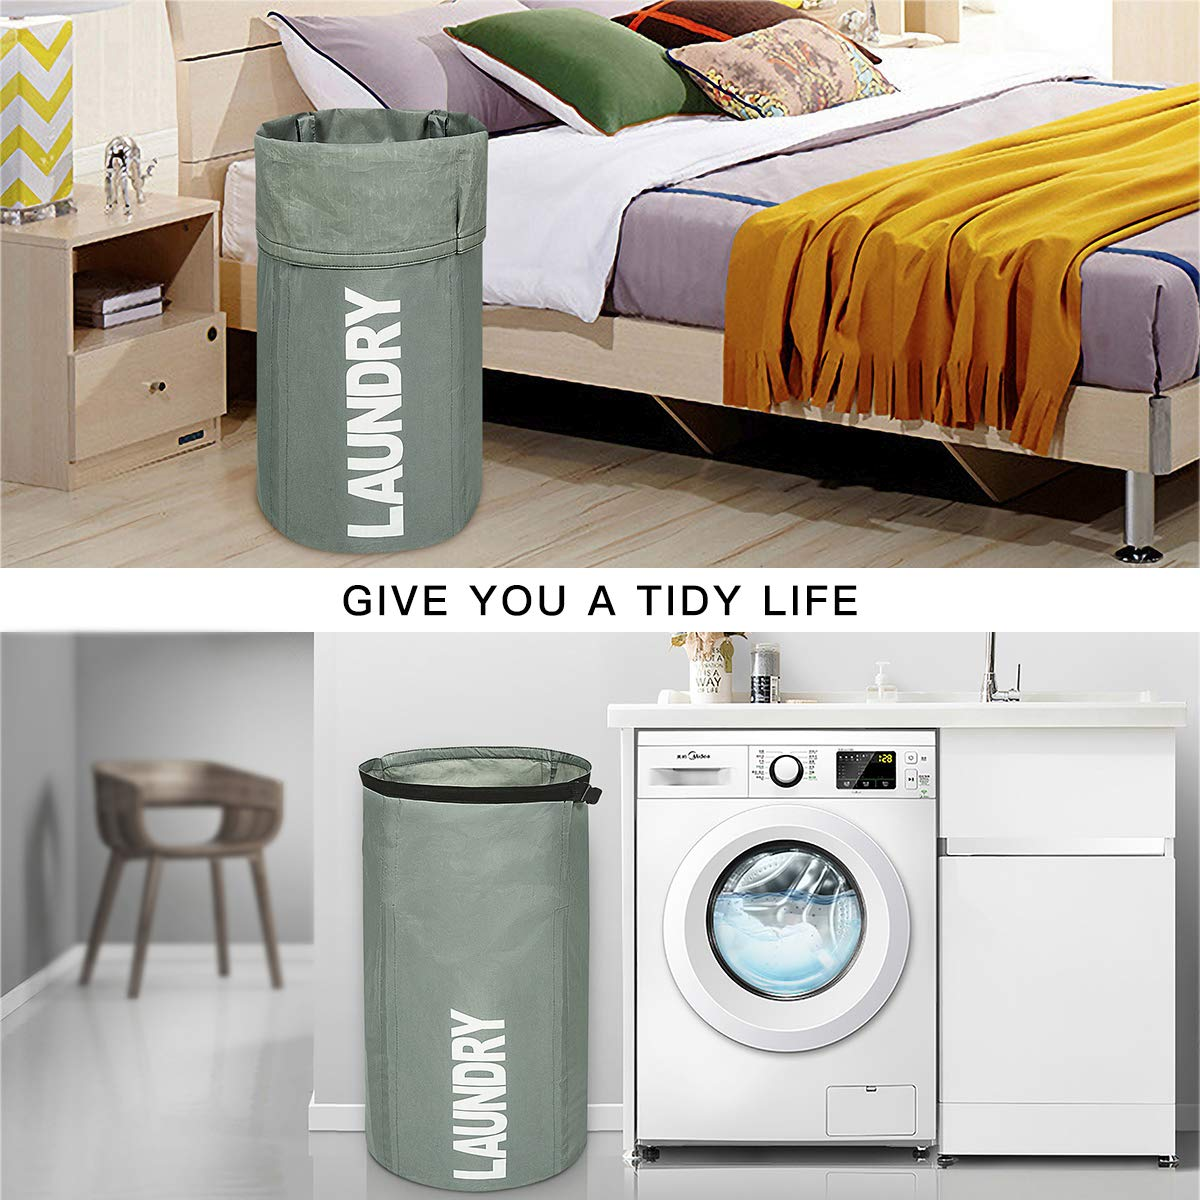 WOWLIVE Extra Large Foldable Laundry Hamper Durable Laundry Basket Collapsible Laundry Bag Backpack Dirty Clothes Hamper Standing Waterproof Hamper Laundry (Gray)